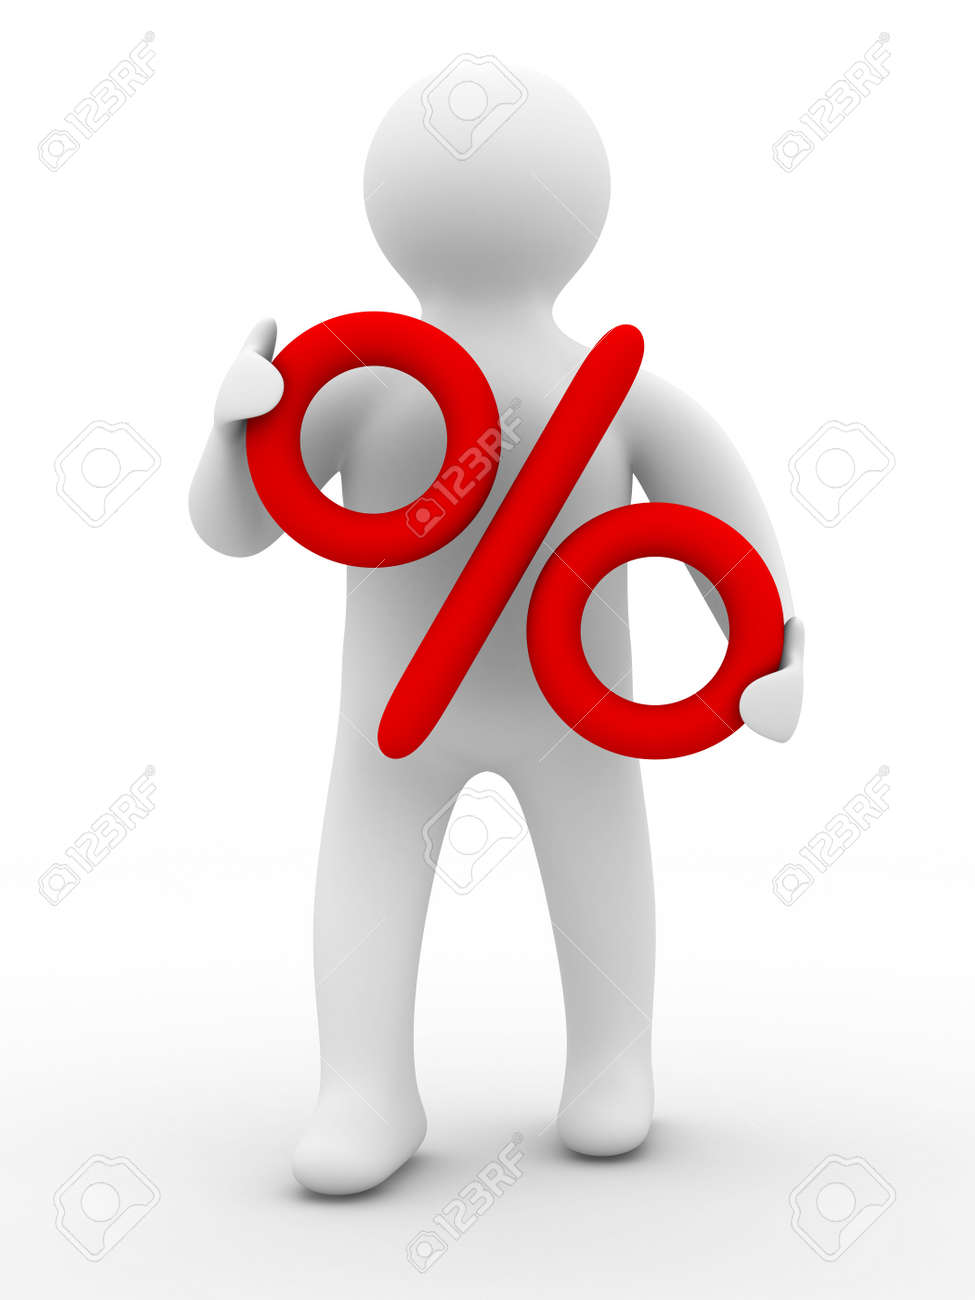 Discounts. Percent on the person. Isolated 3D image Stock Photo - 5586597